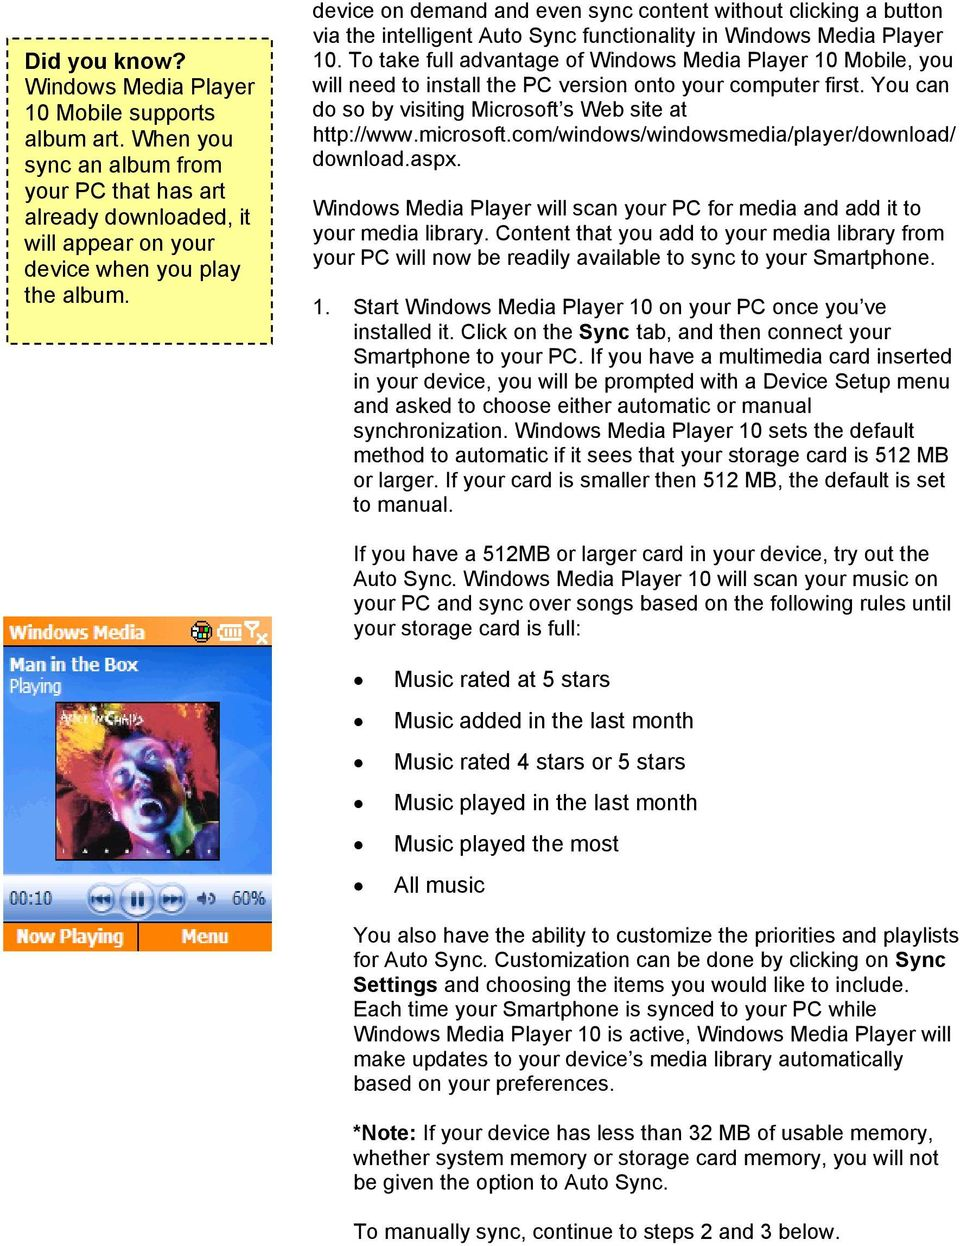 Windows Media Player 10 Mobile: More Music, More Choices - PDF